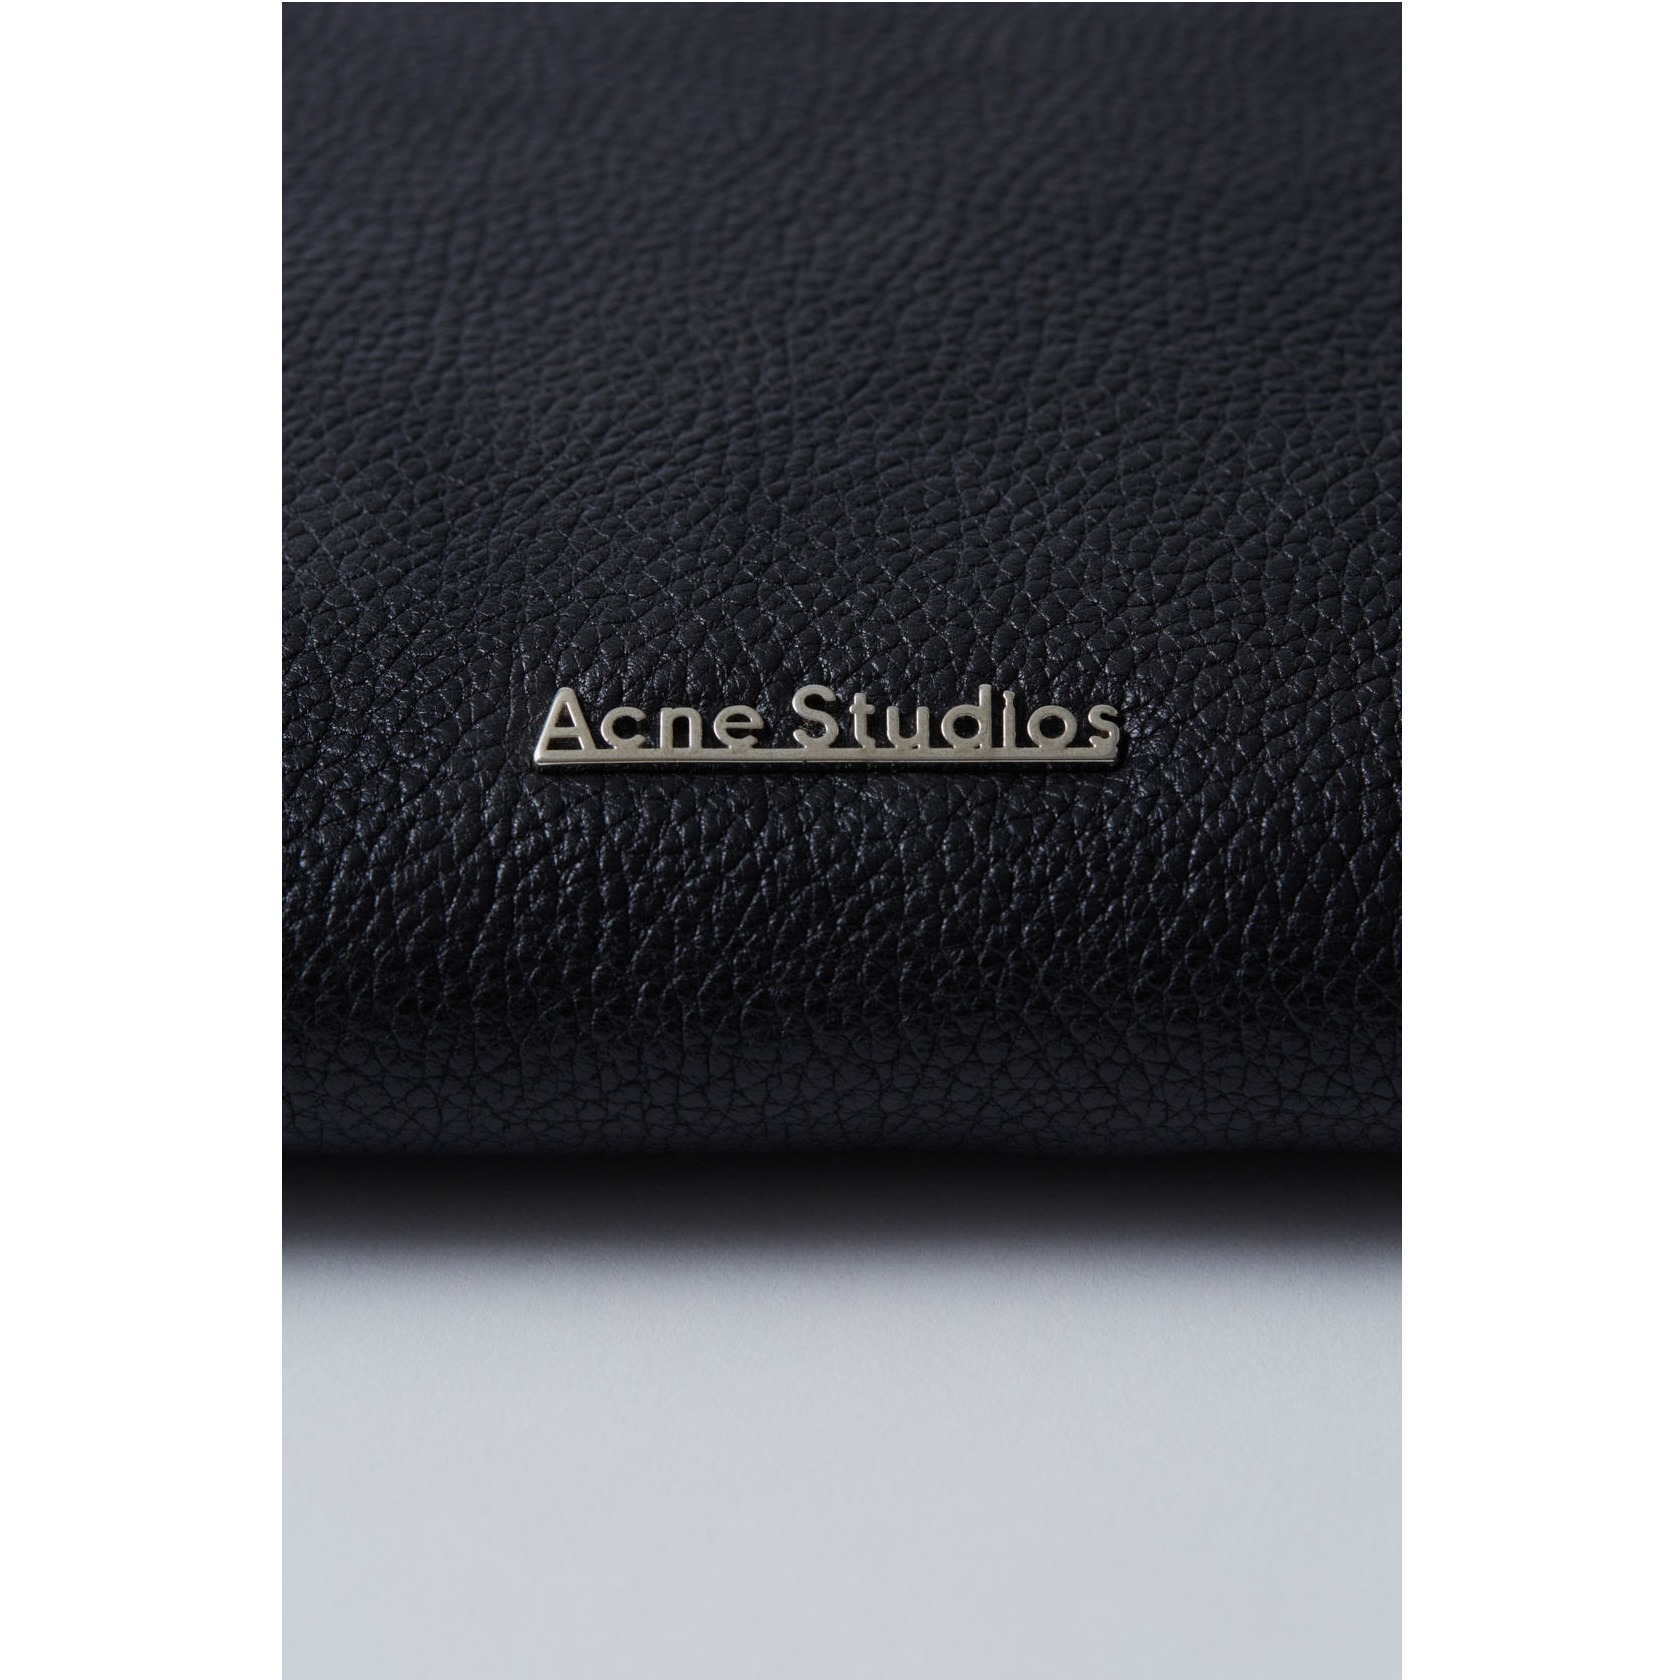 [Acne] Viola grain leather pouch black グレインレザーポーチ